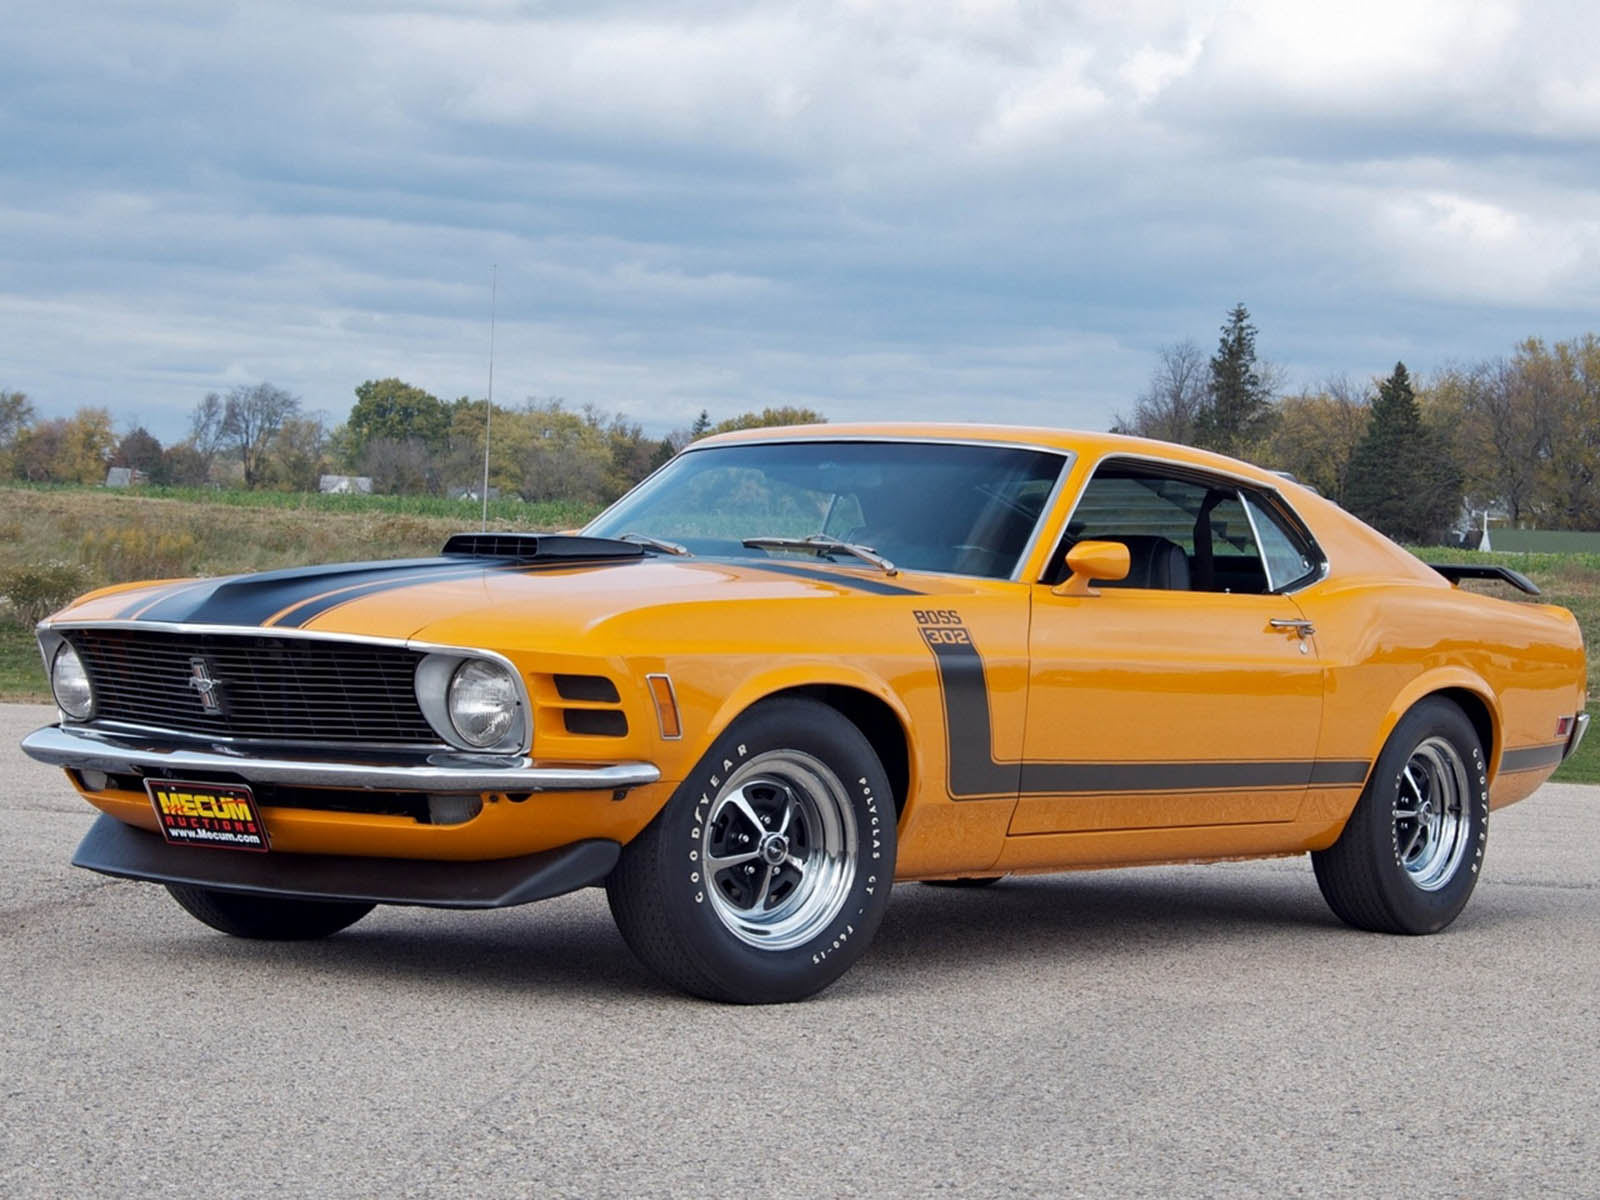 wallpapers: Classic Cars Wallpapers